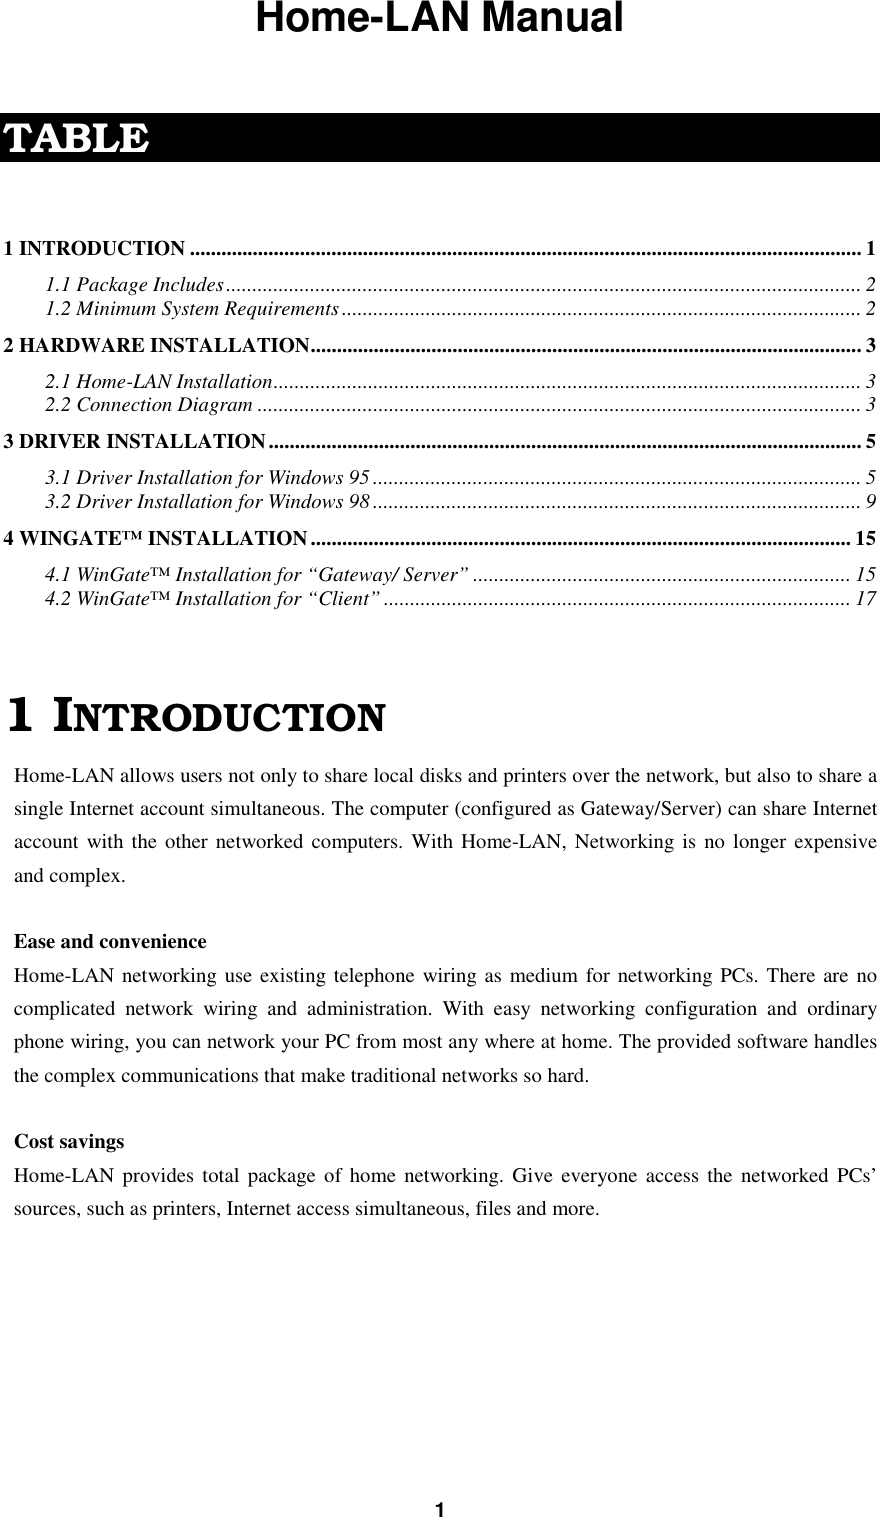 Askey Computer Hnh010d75 Home Lan Modem User Manual Network Connection Diagram Users